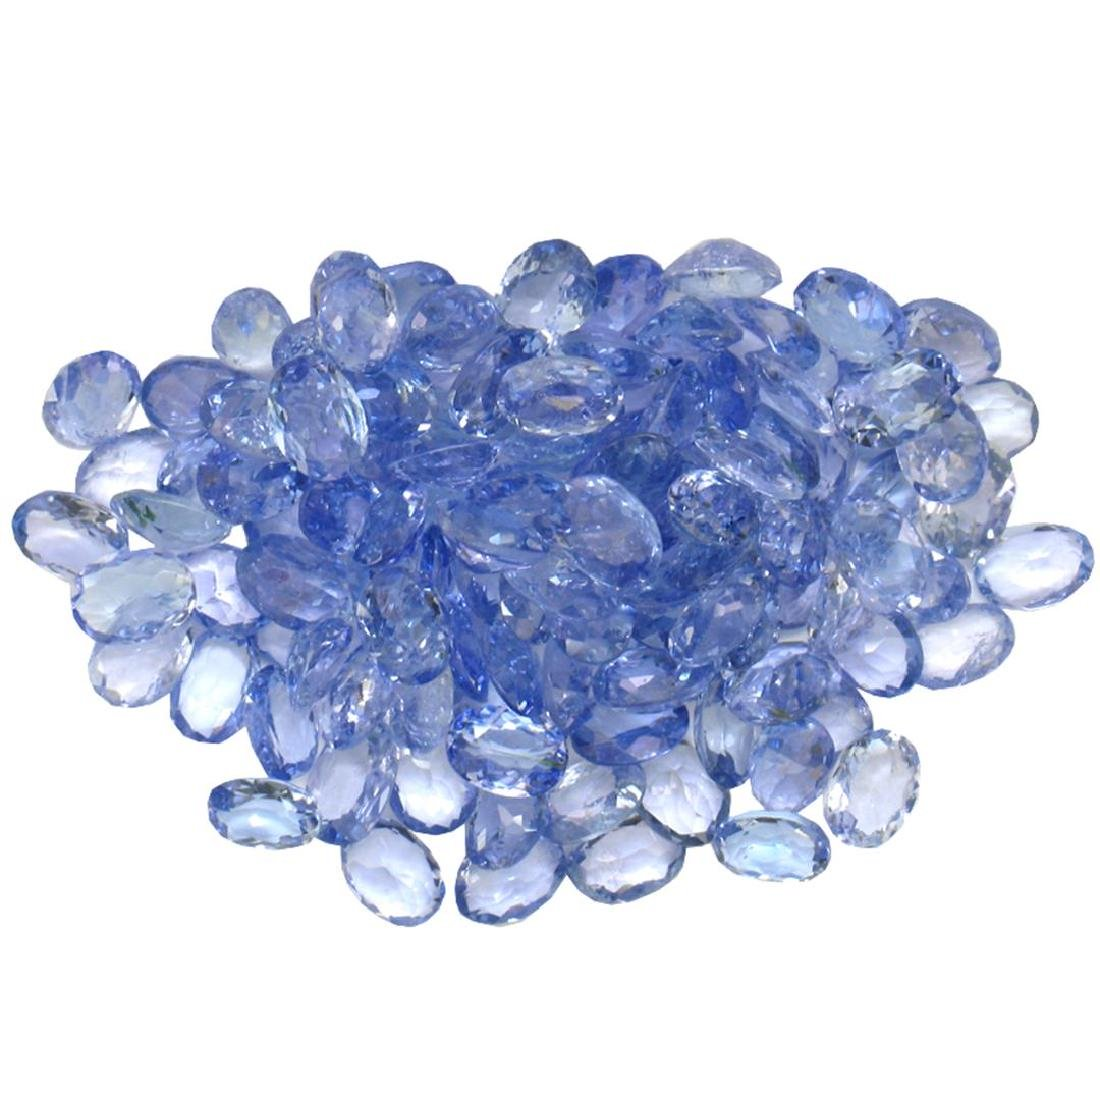 15.4 ctw Oval Mixed Tanzanite Parcel